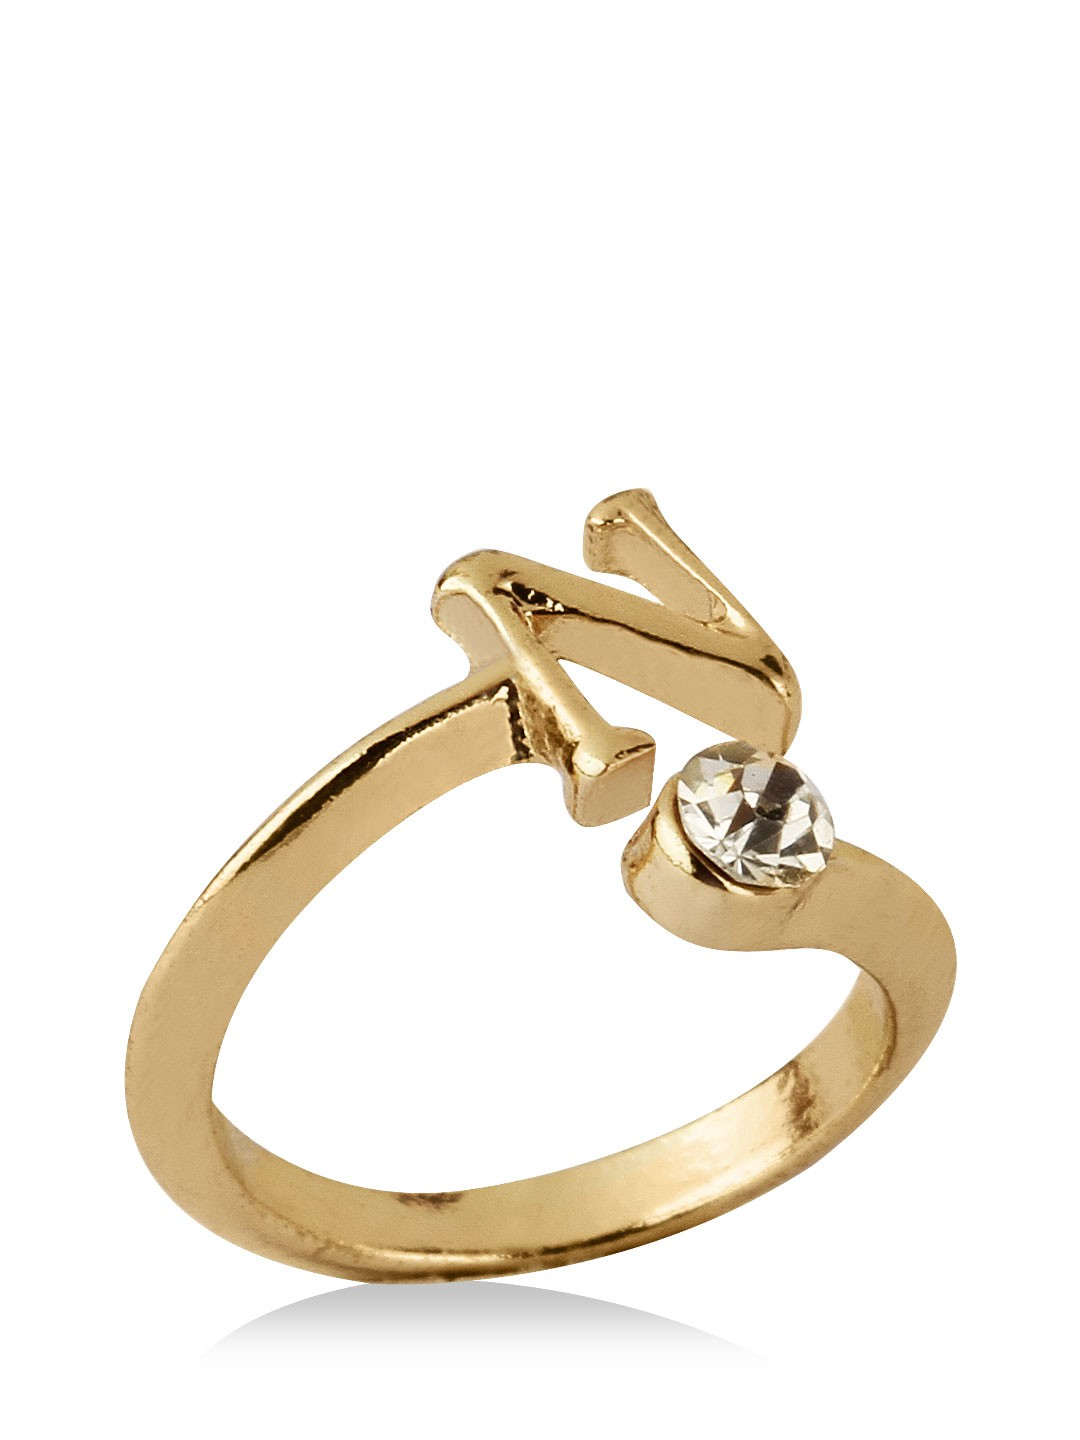 B Letter In Gold Ring Buy KOOVS Initial Ring...